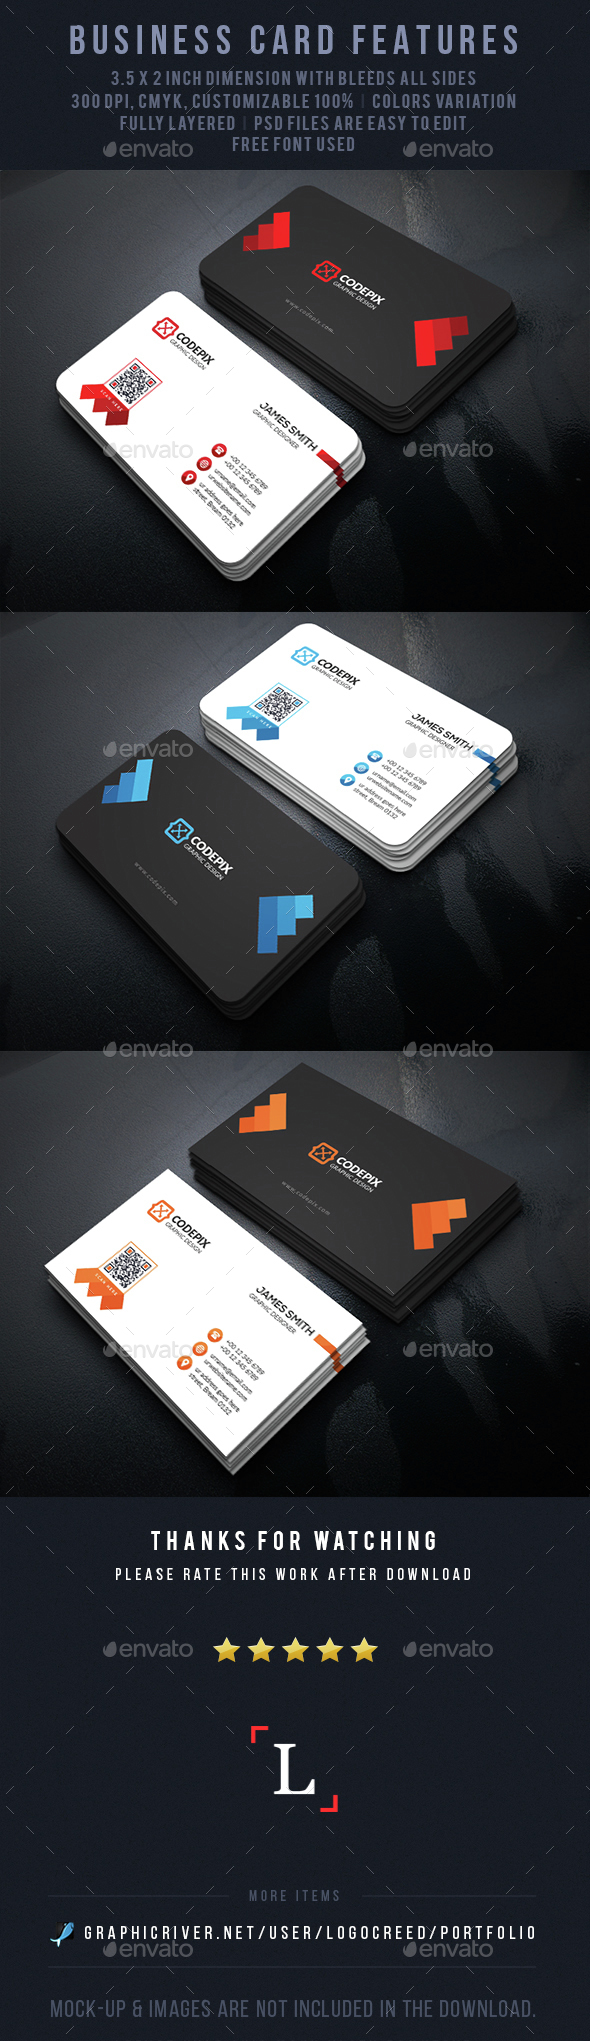 Graphic Business Card - Business Cards Print Templates